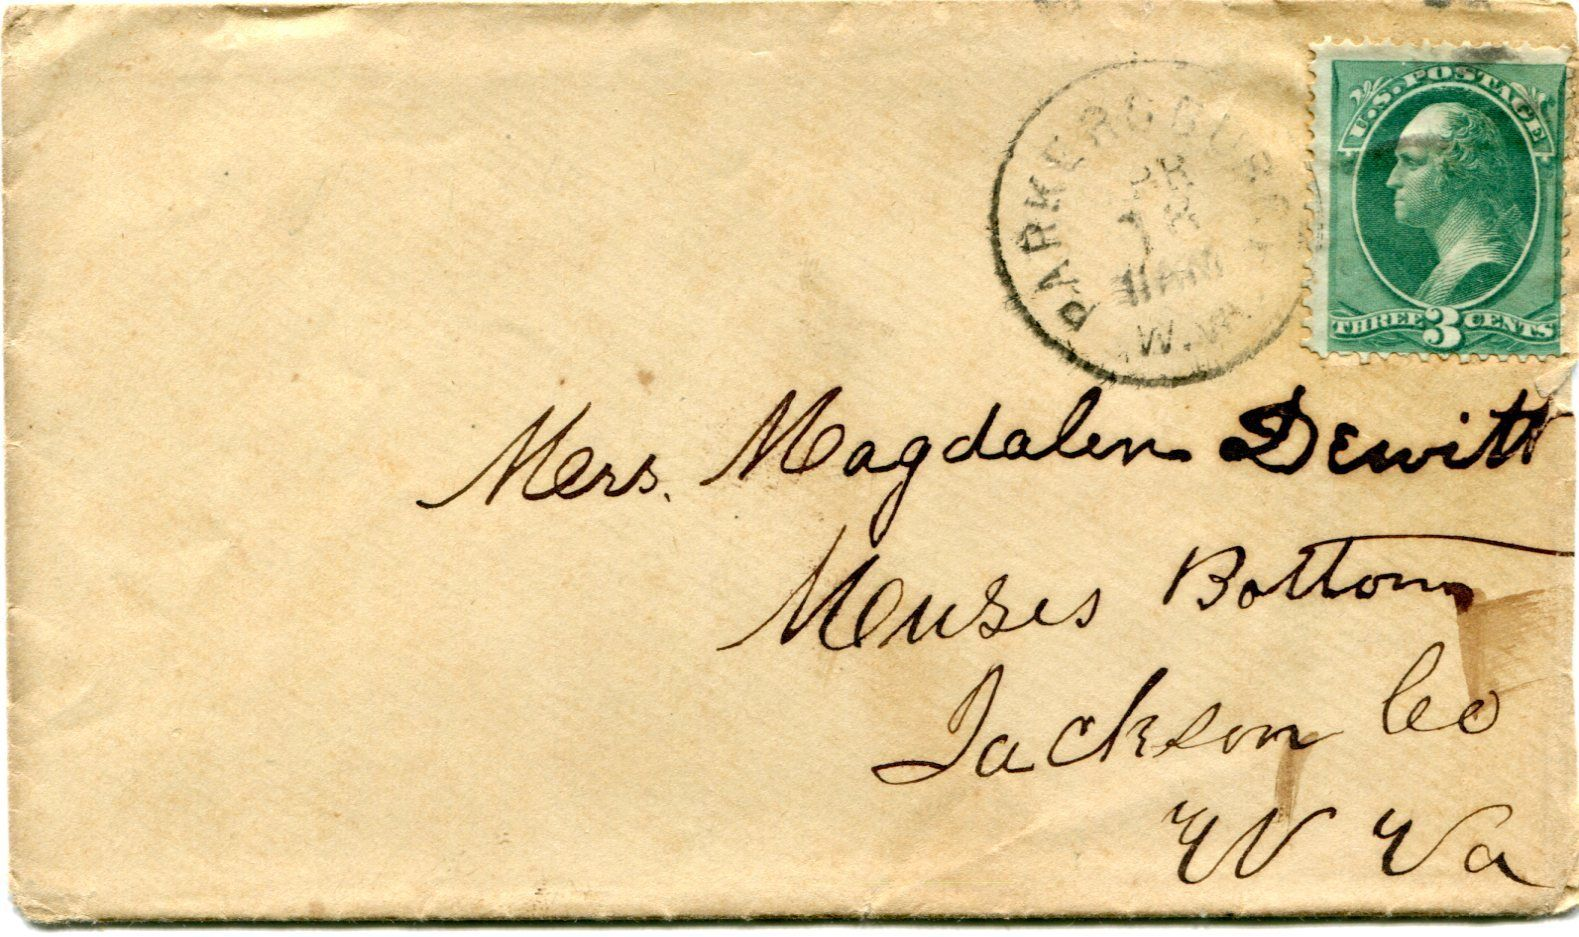 Cover And Letter Parkersburg Wv To Muses Bottom